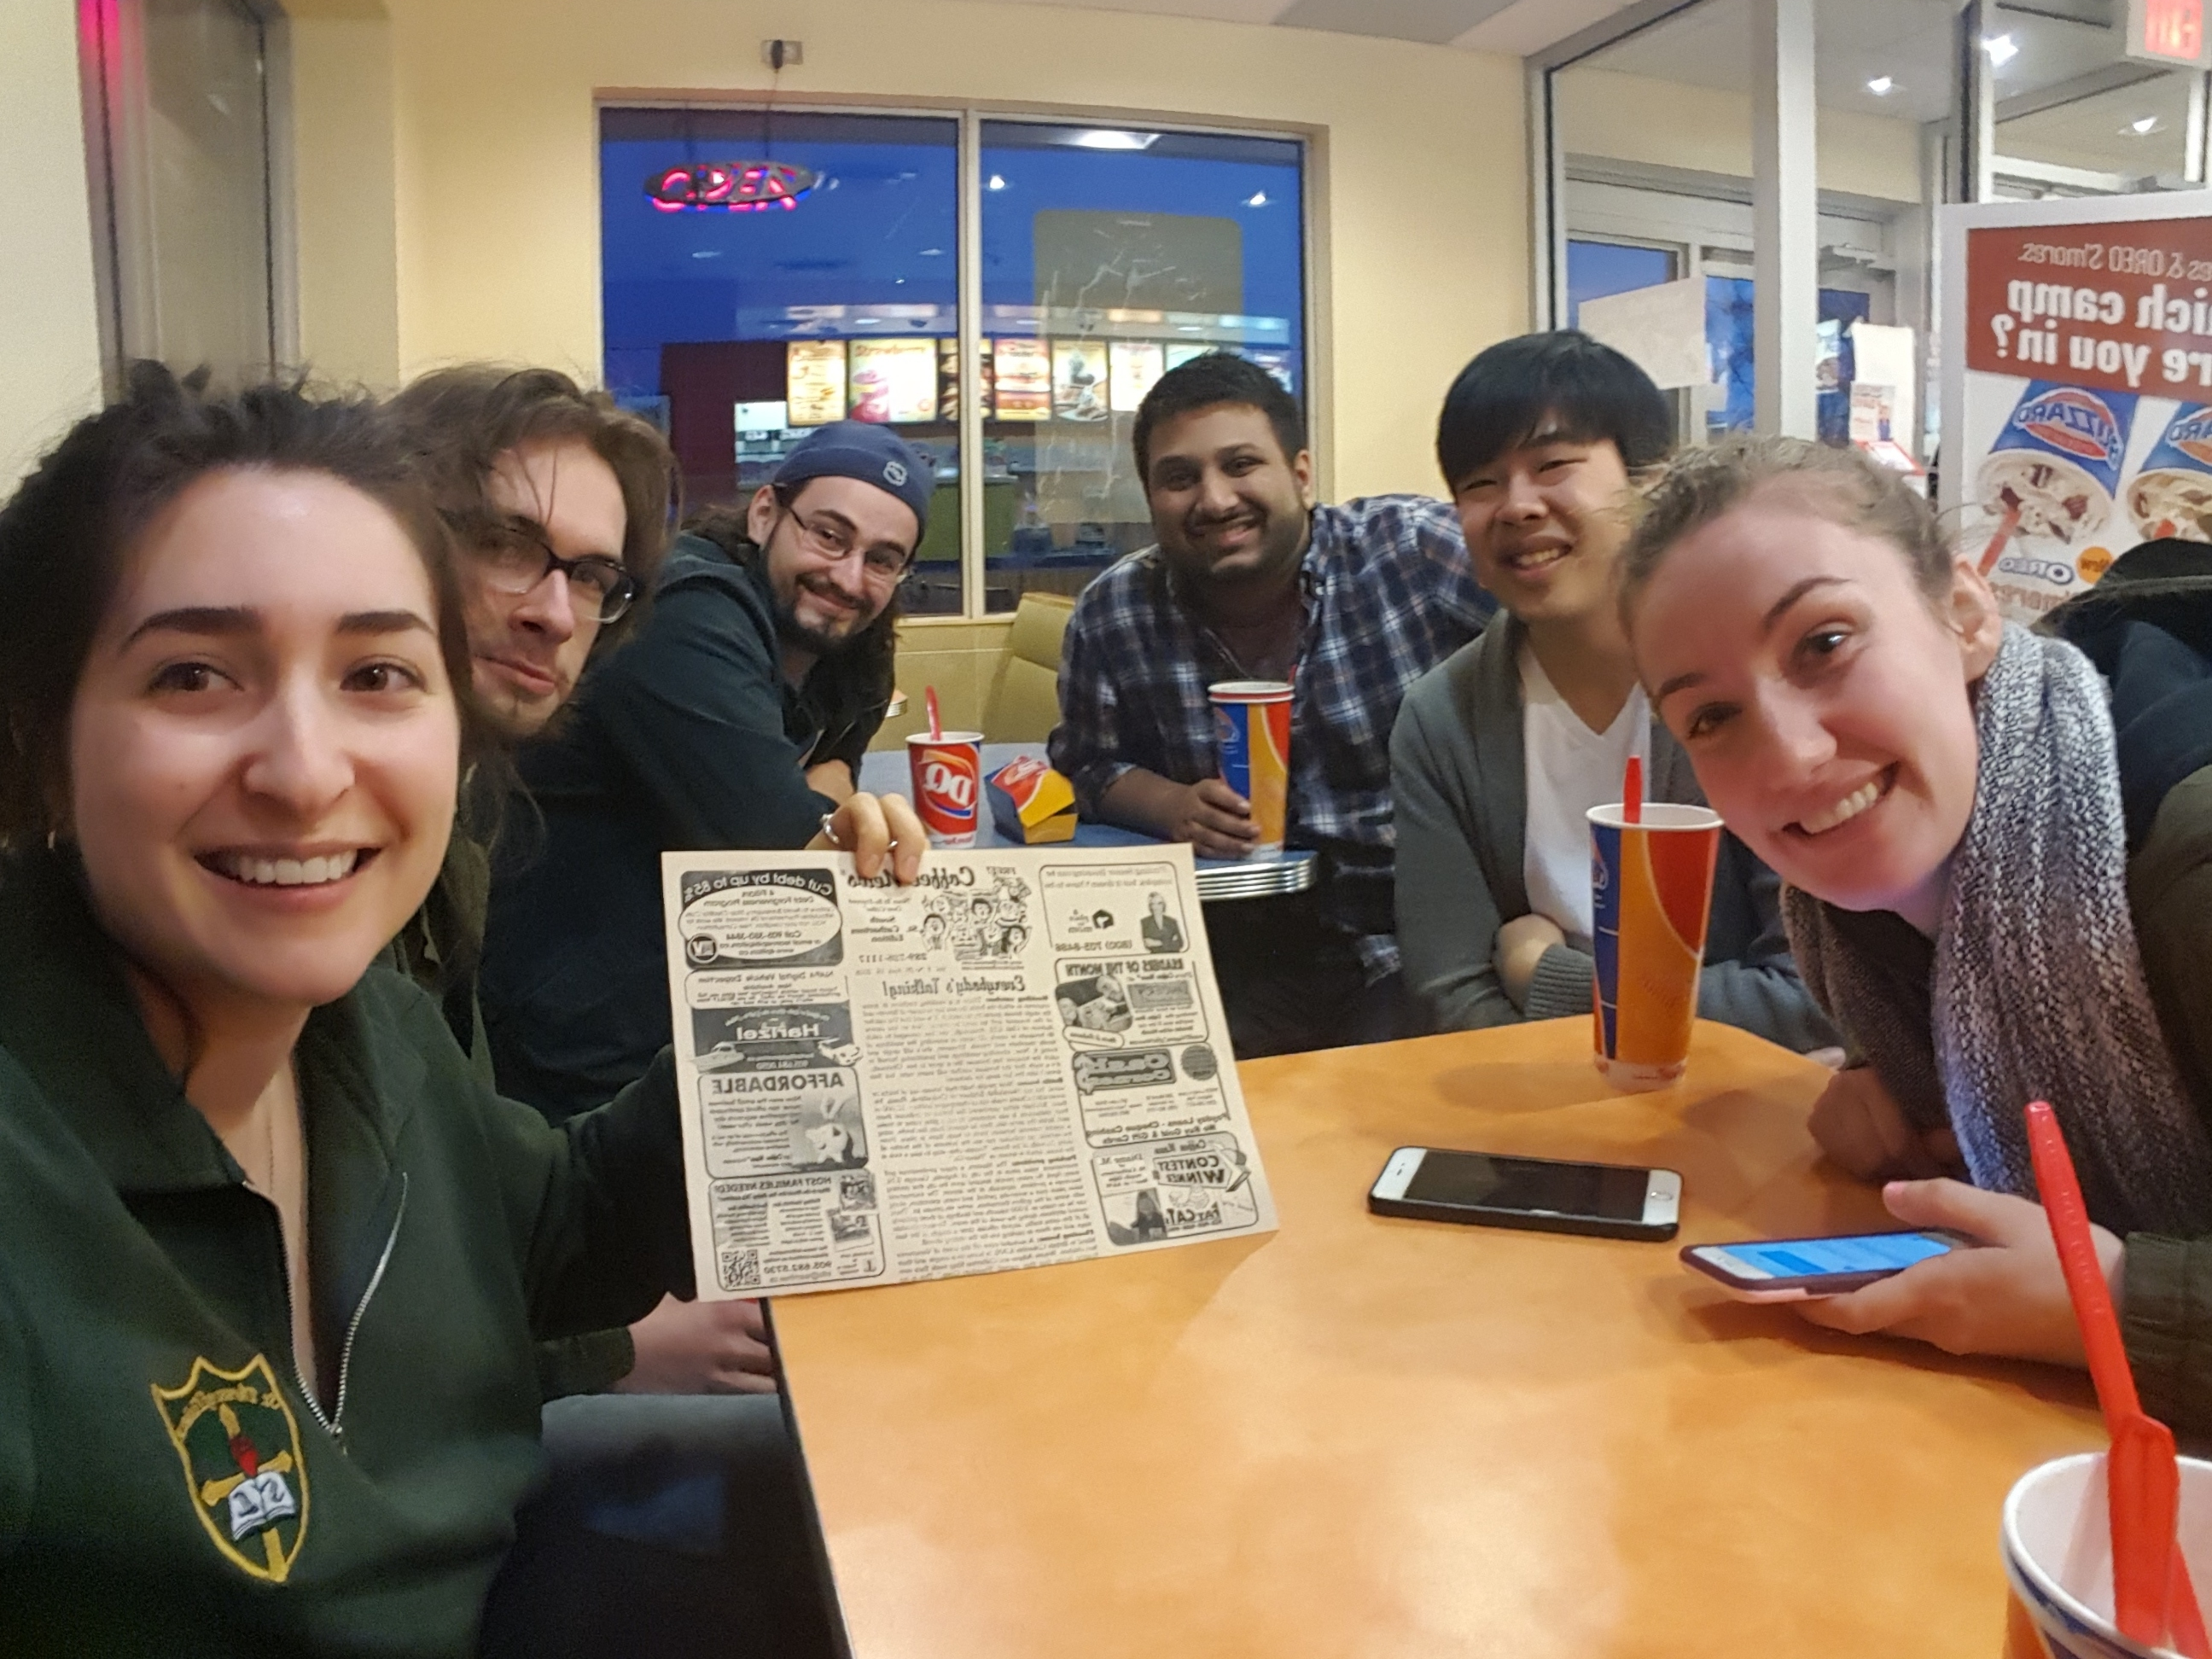 Elyse, Ryan, Farhan, Bryan, Nico and Anita at DQ